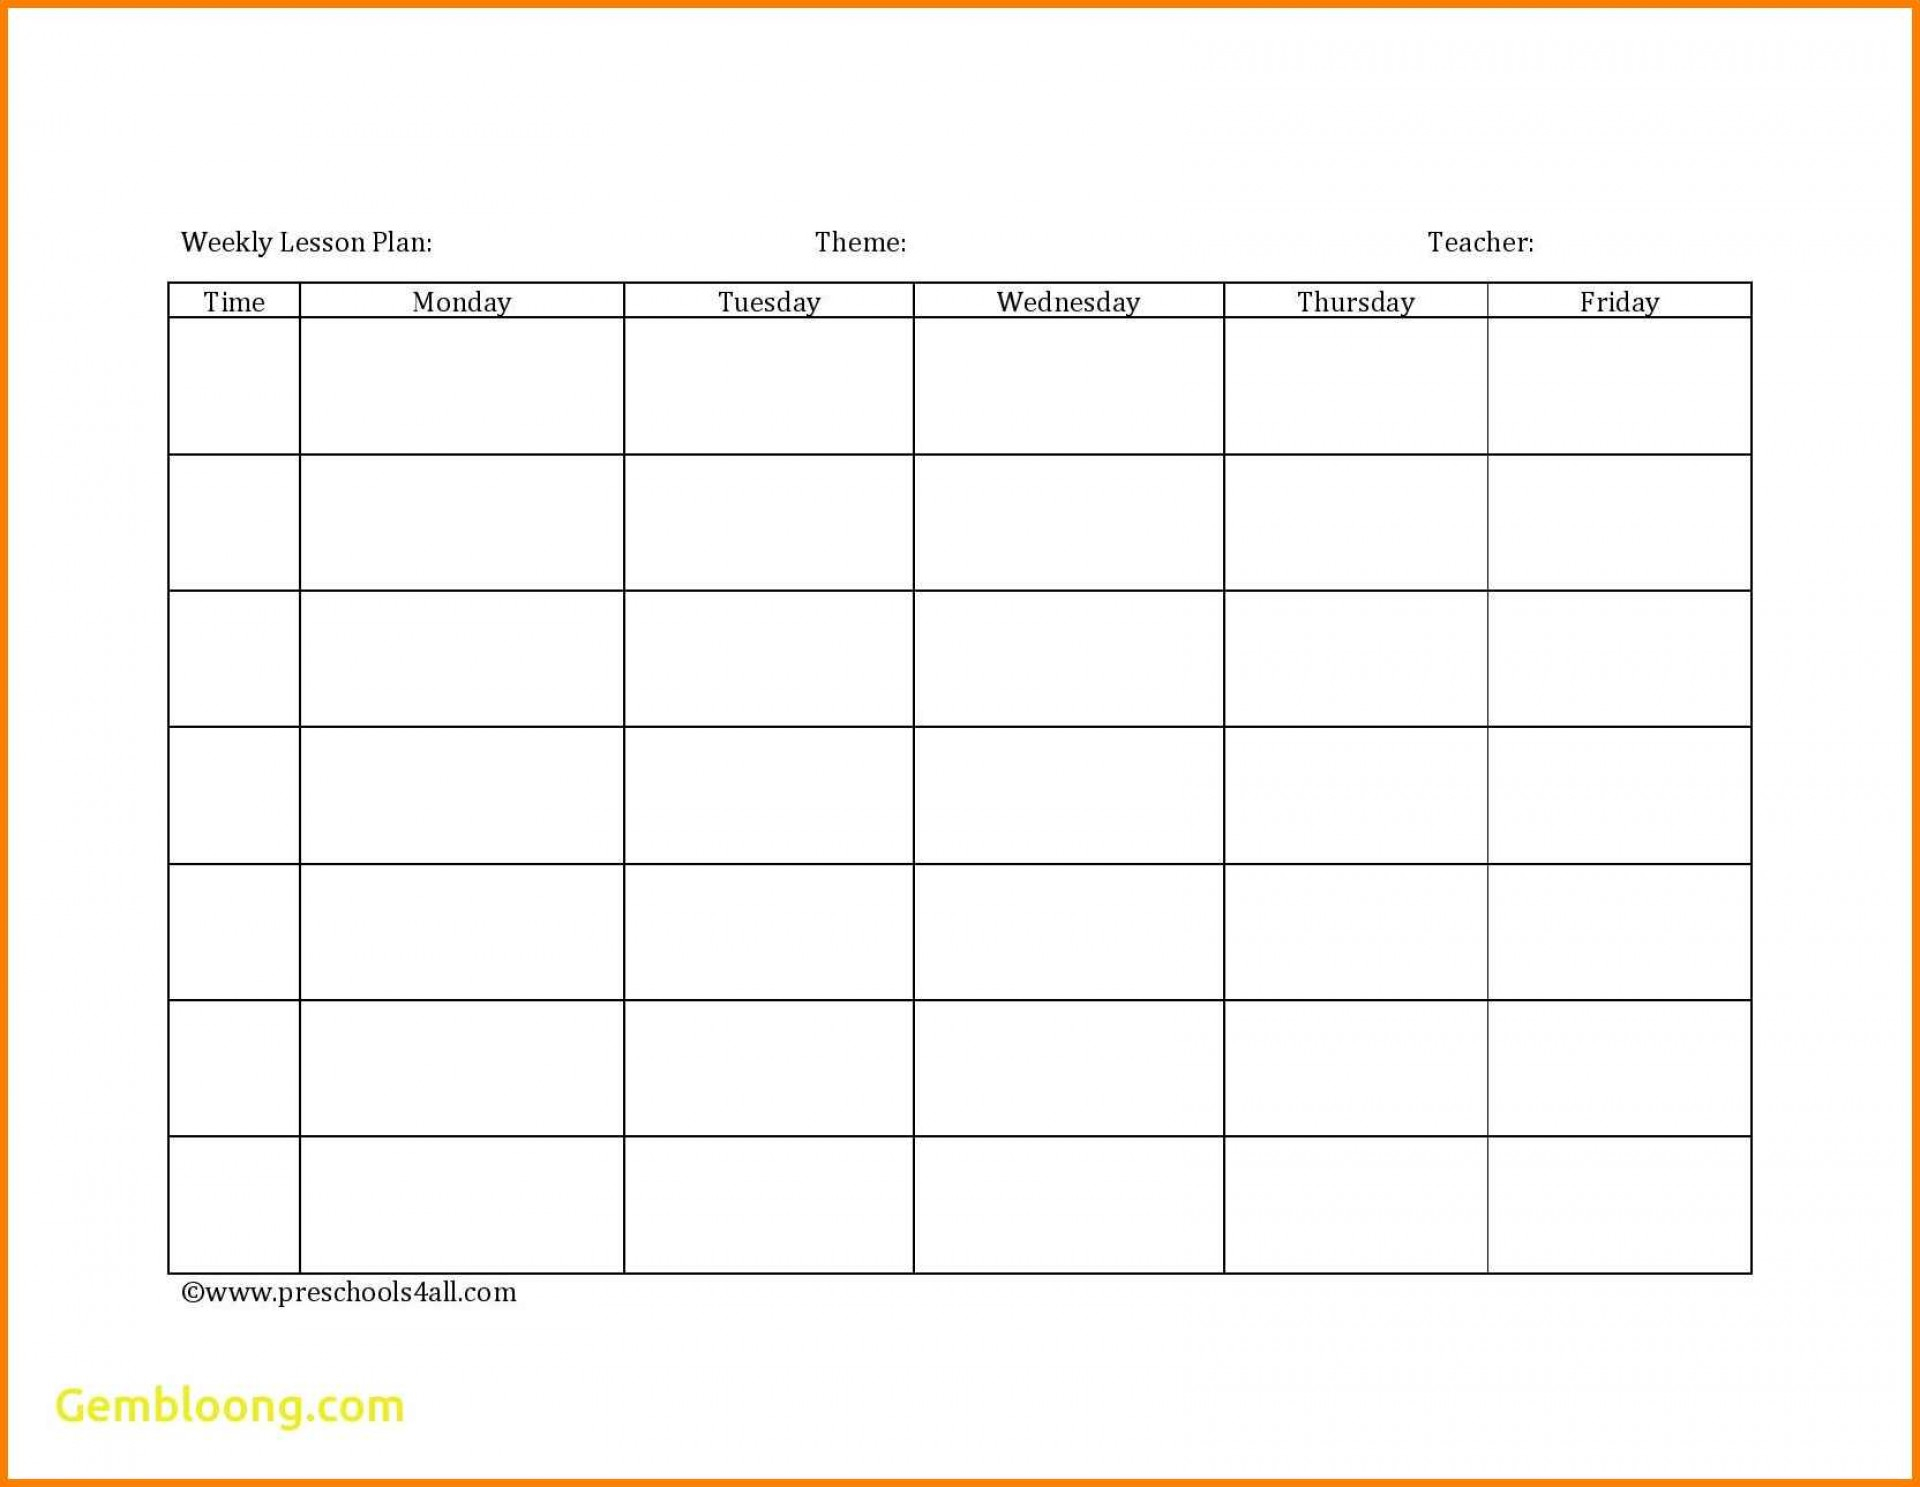 Blank Spreadsheet For Teachers Within 009 Blank Lesson Plan Templates Template Impressive Nz Free Download